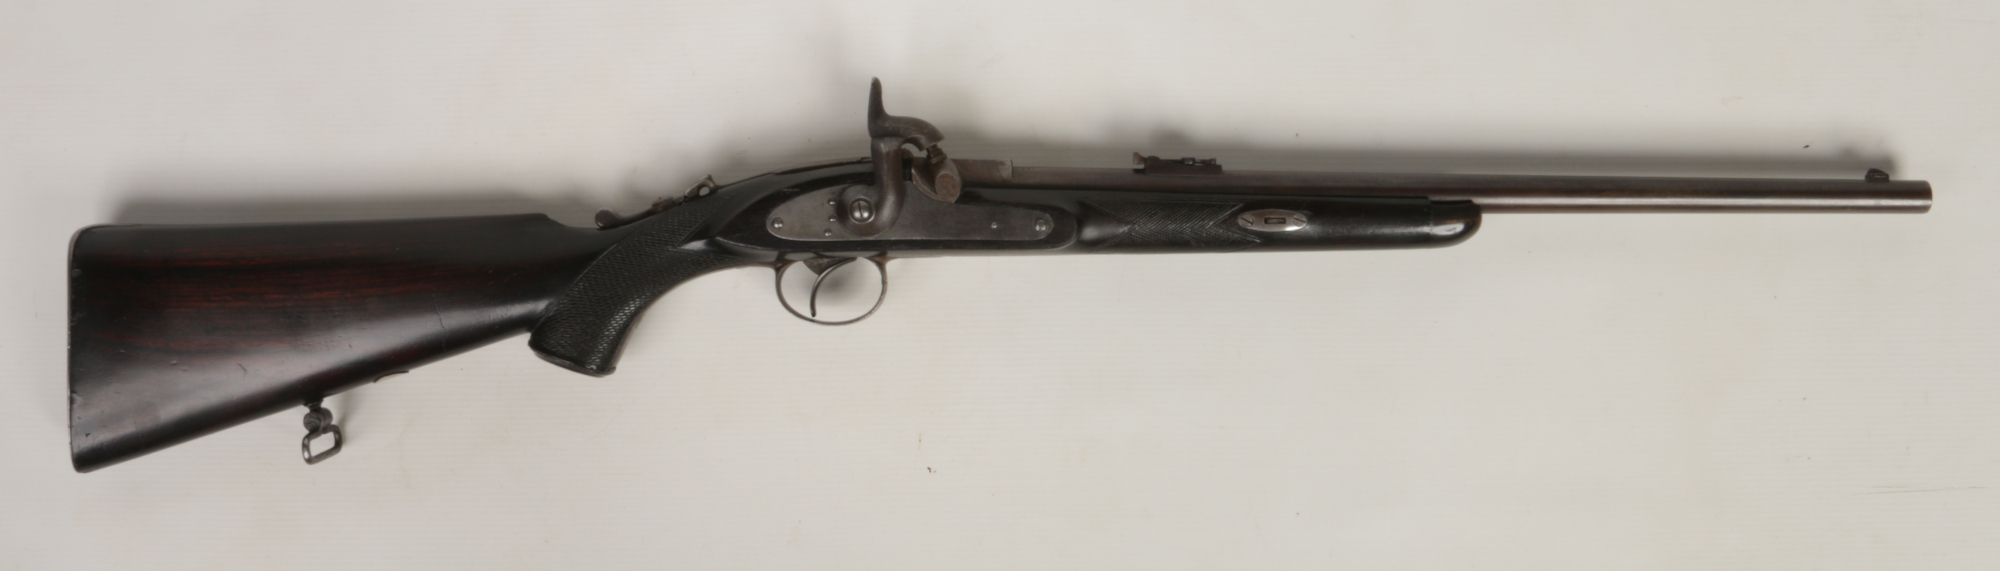 Lot 264 - A Westley Richards & Co. Whitworth patent breech loading monkey tail percussion rifle .450. With